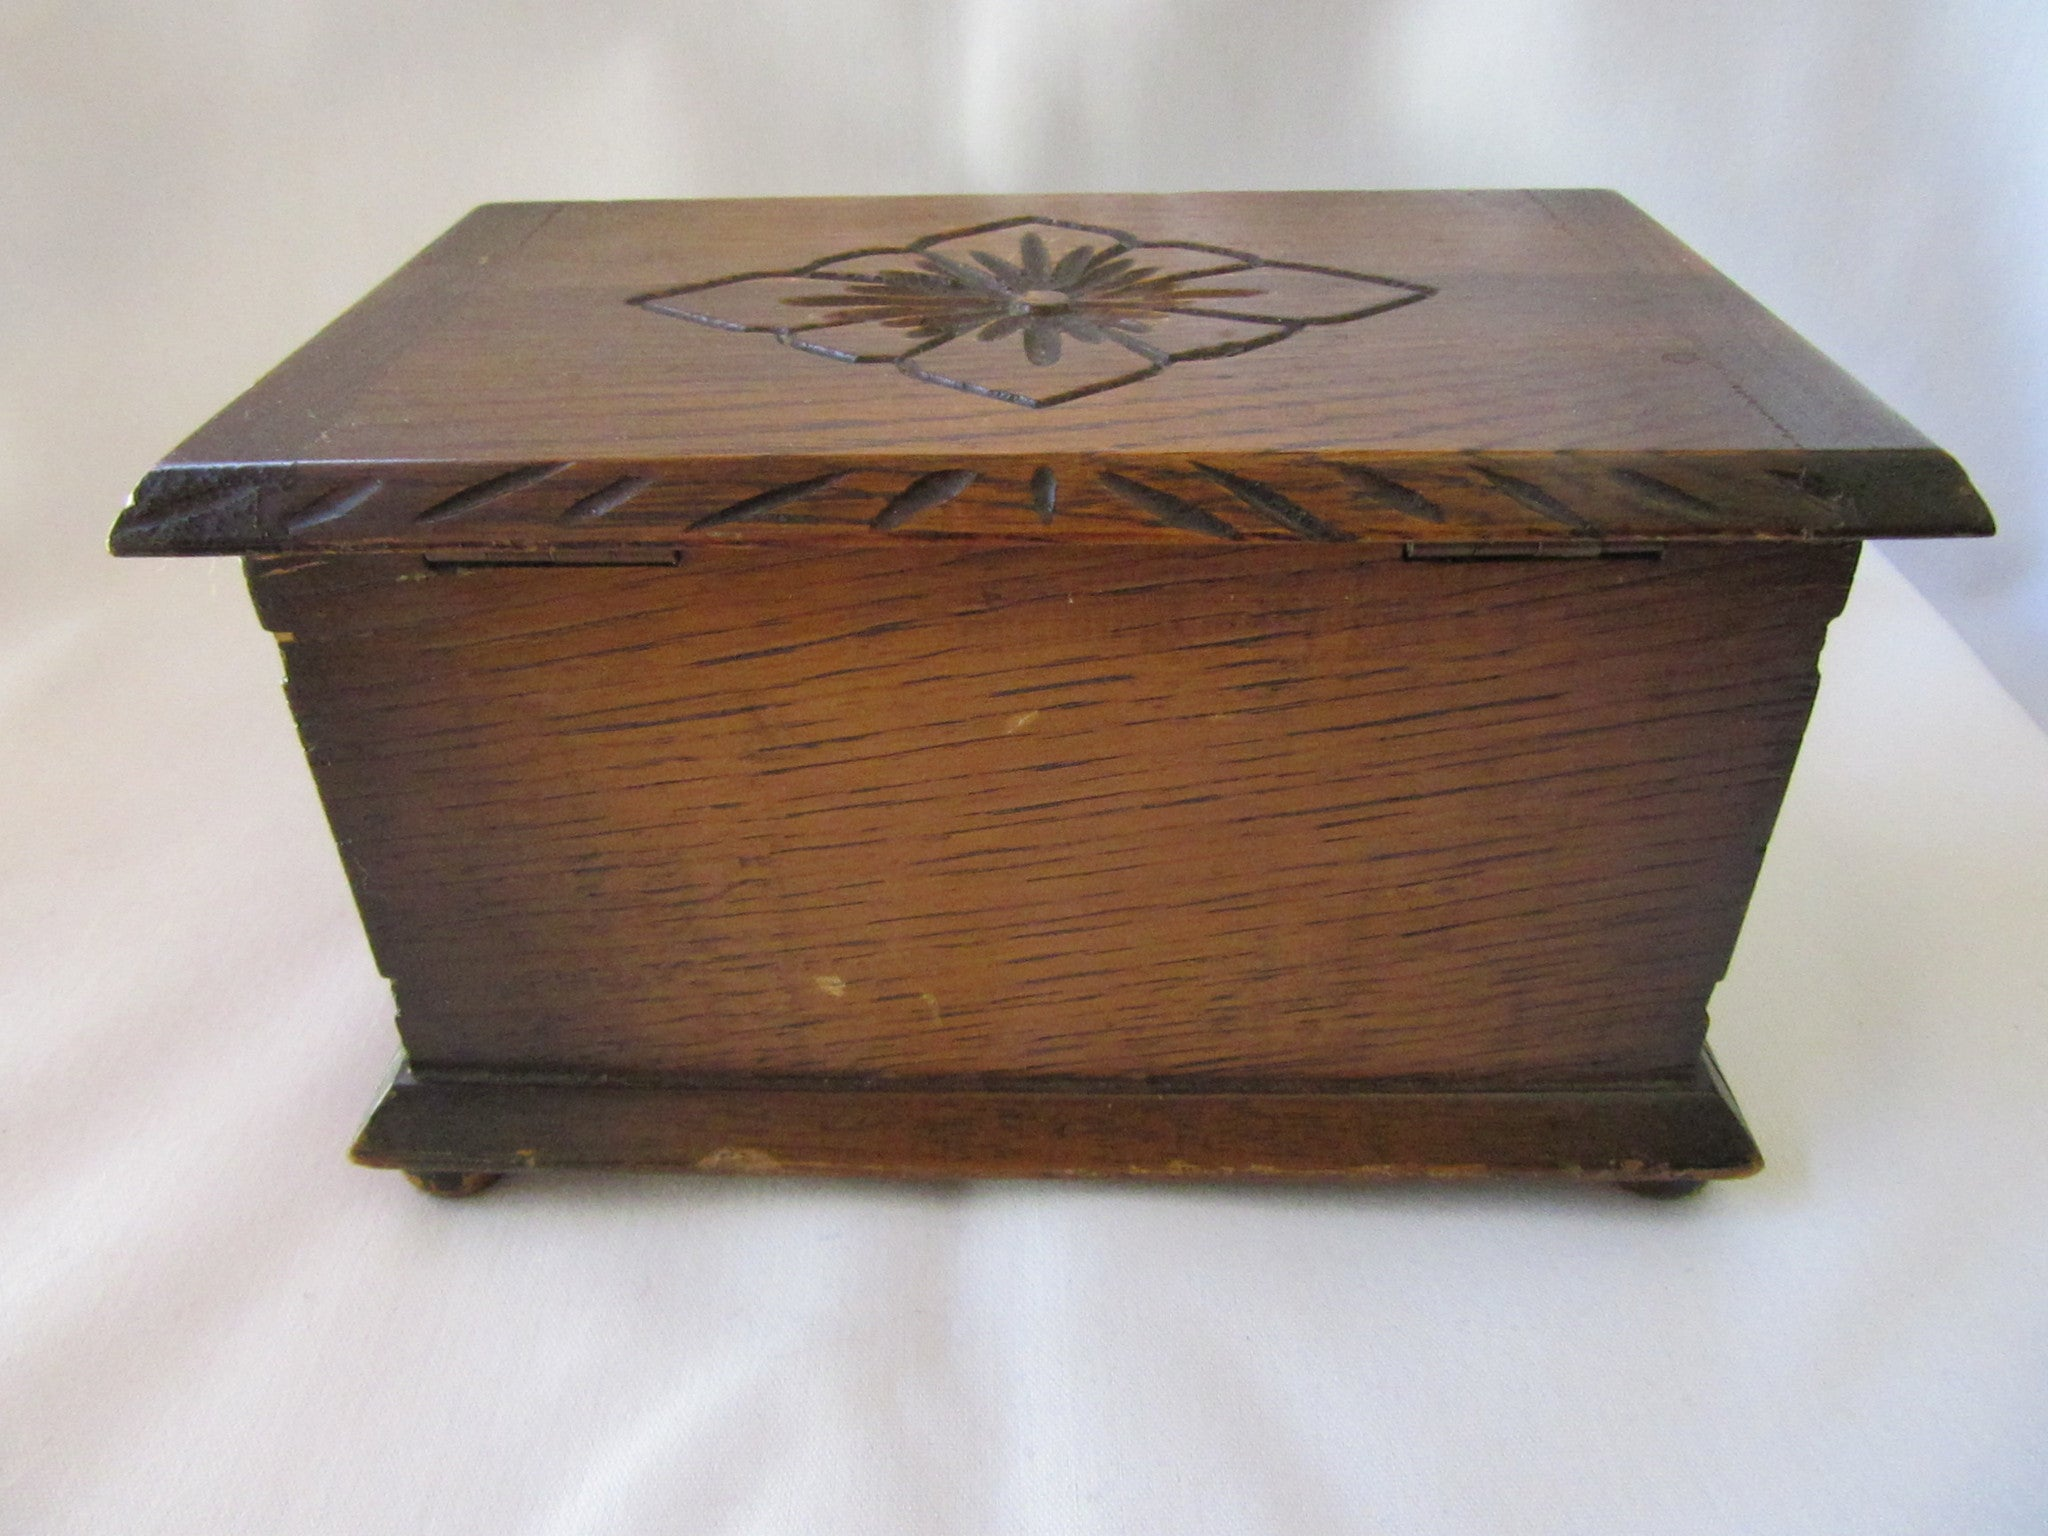 Etched Wooden Jewelry Box Vintage Wooden Box Wooden Jewellery